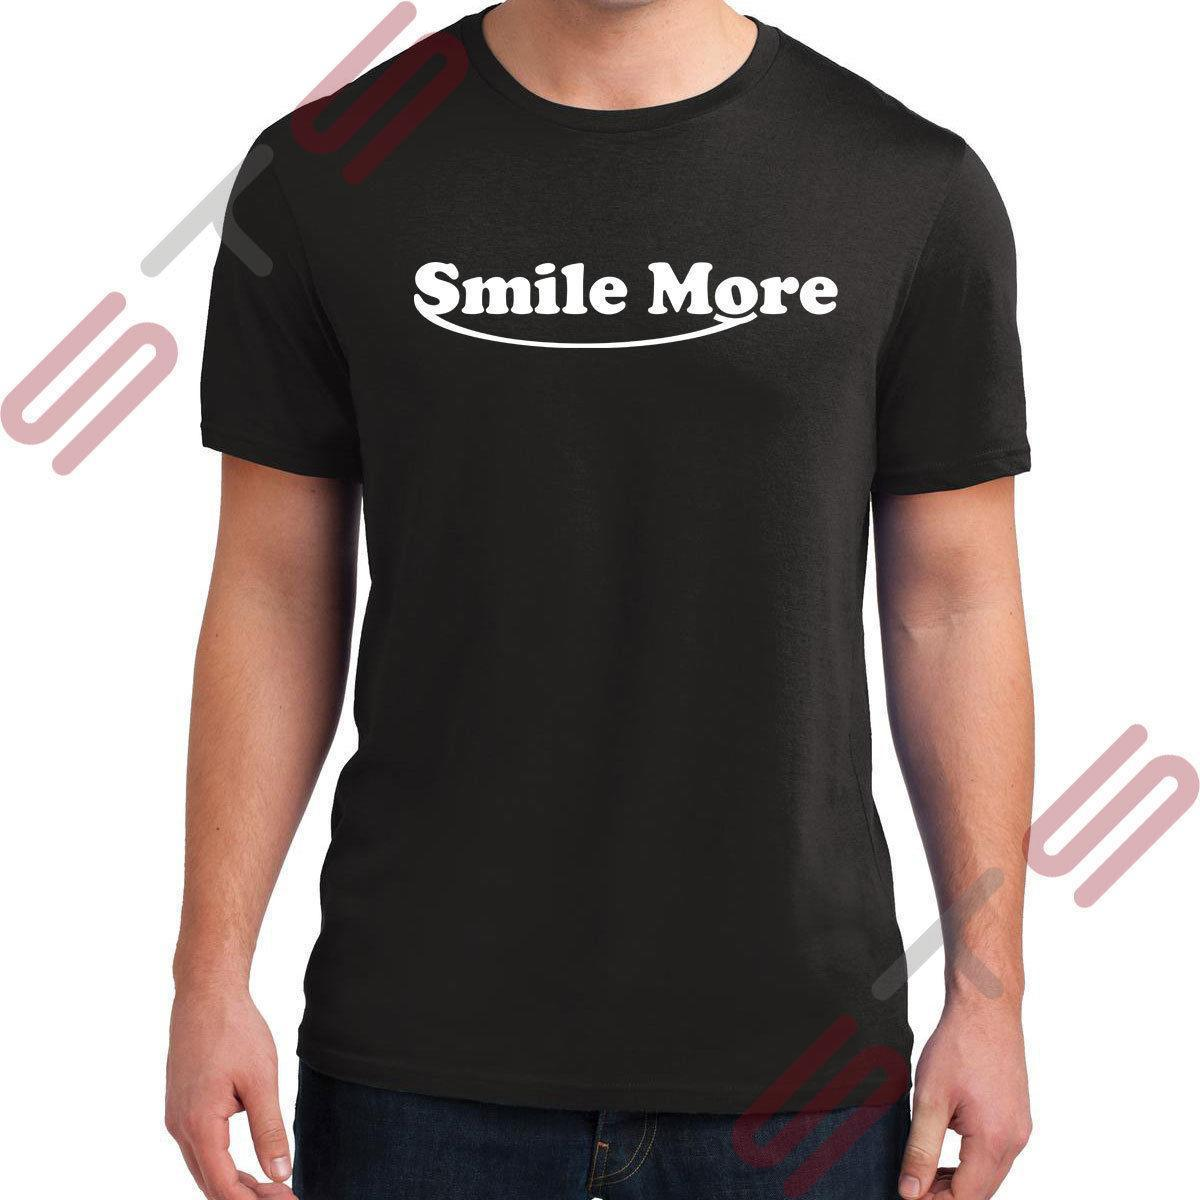 f530c7704 Smile More Tshirt T Shirt Tee Top Roman Atwood Gamer Youtube Top Youtuber Interesting  T Shirt Purchase T Shirts From Linnan06